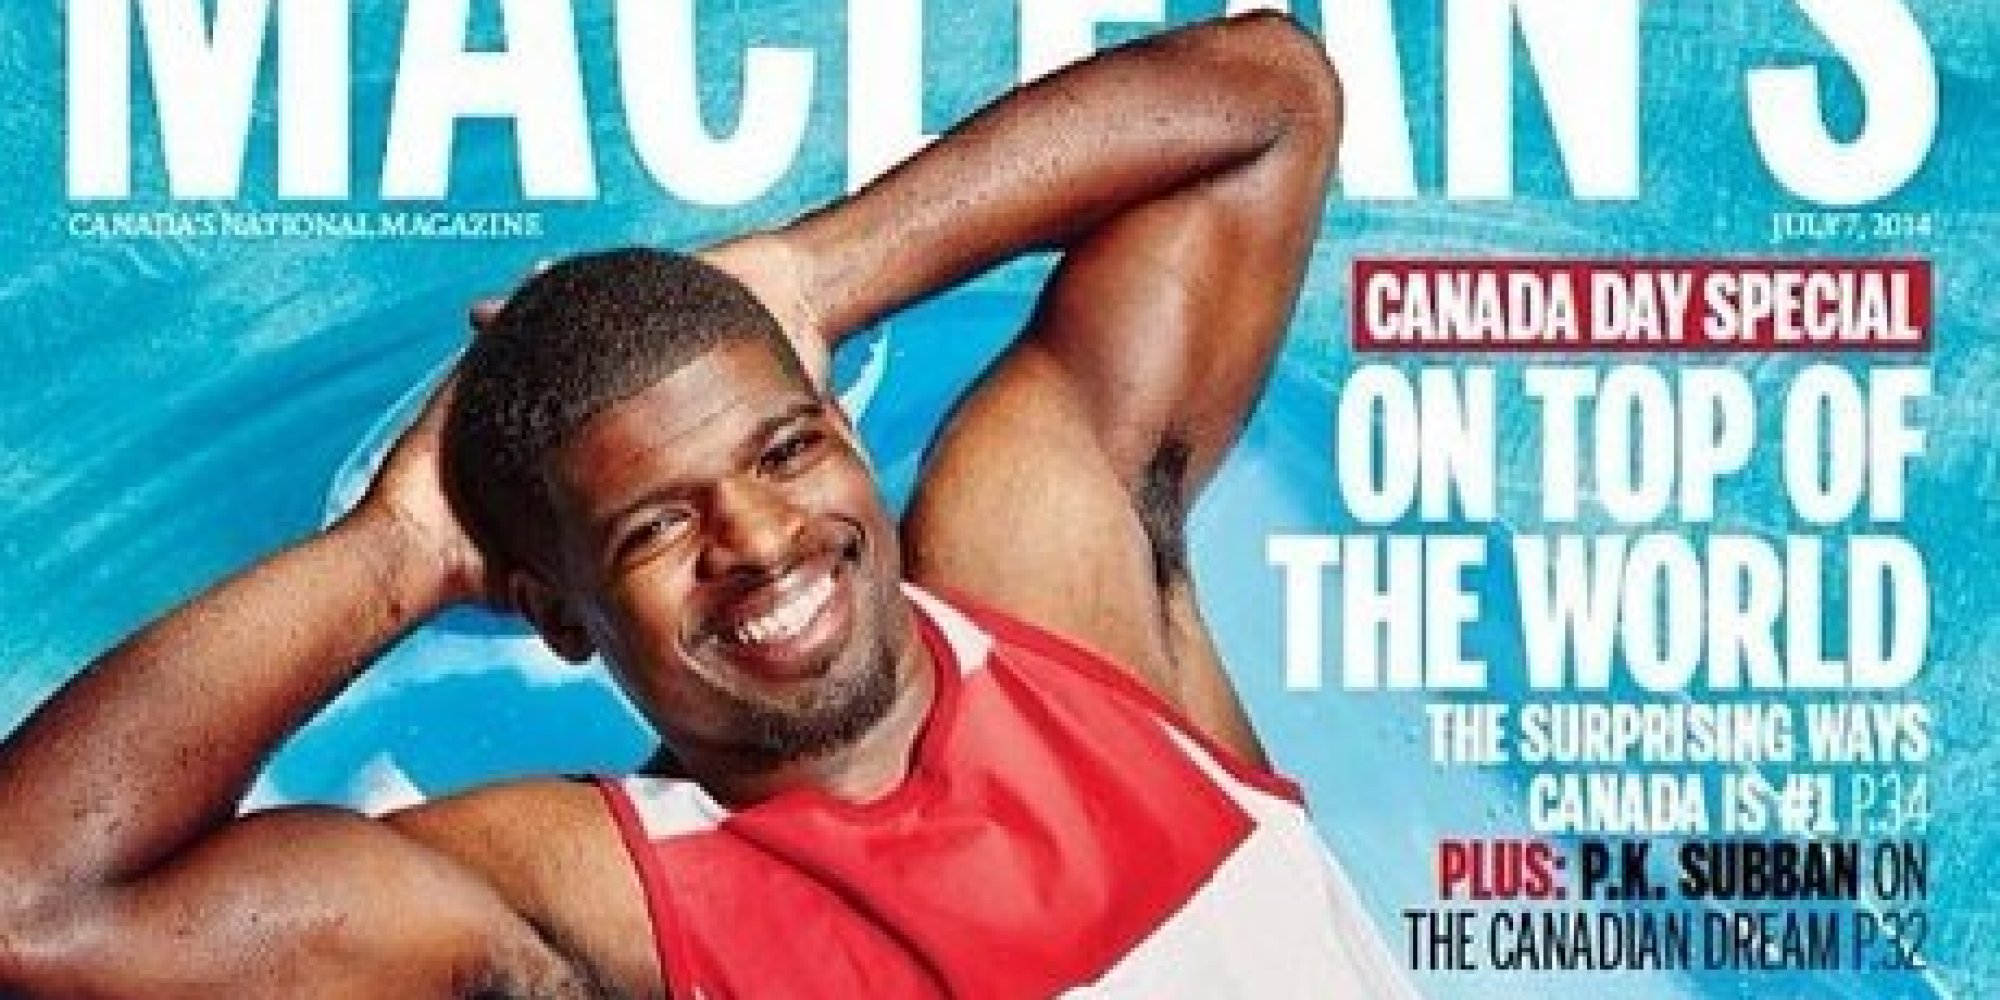 Pk Subbans Macleans Cover Is Predictably Awesome Photo